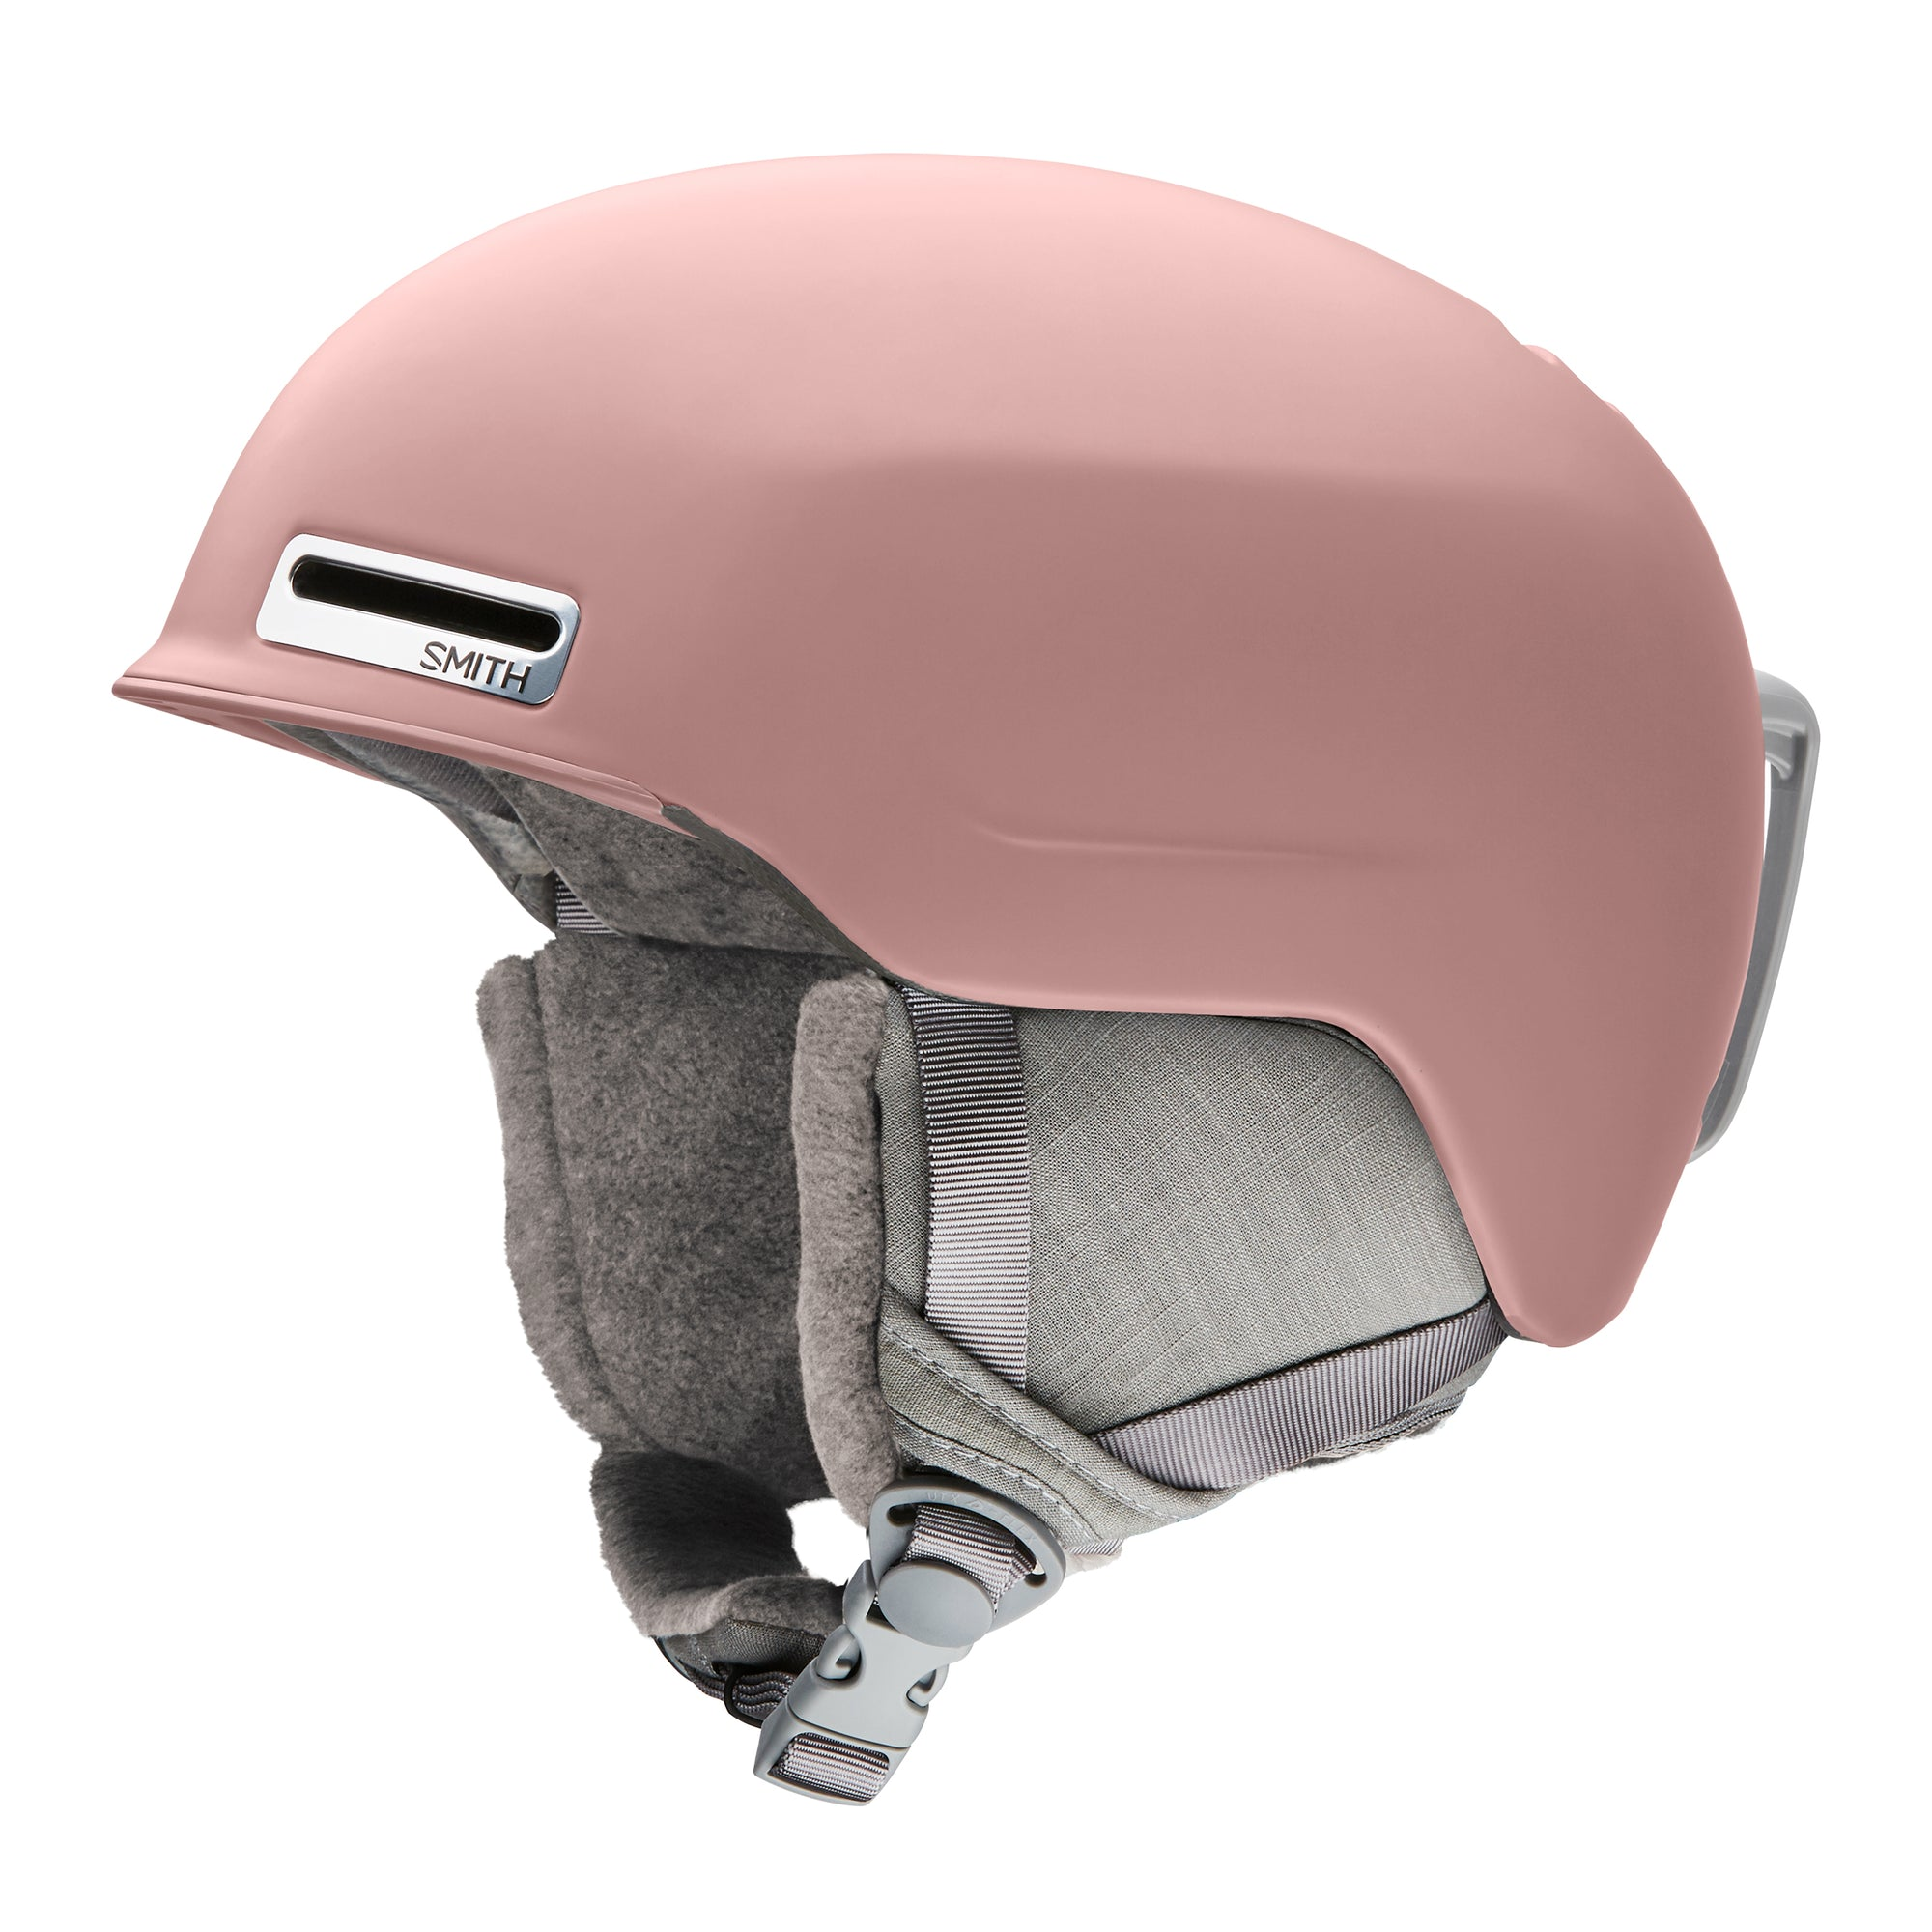 Smith 2021 ALLURE Helmet